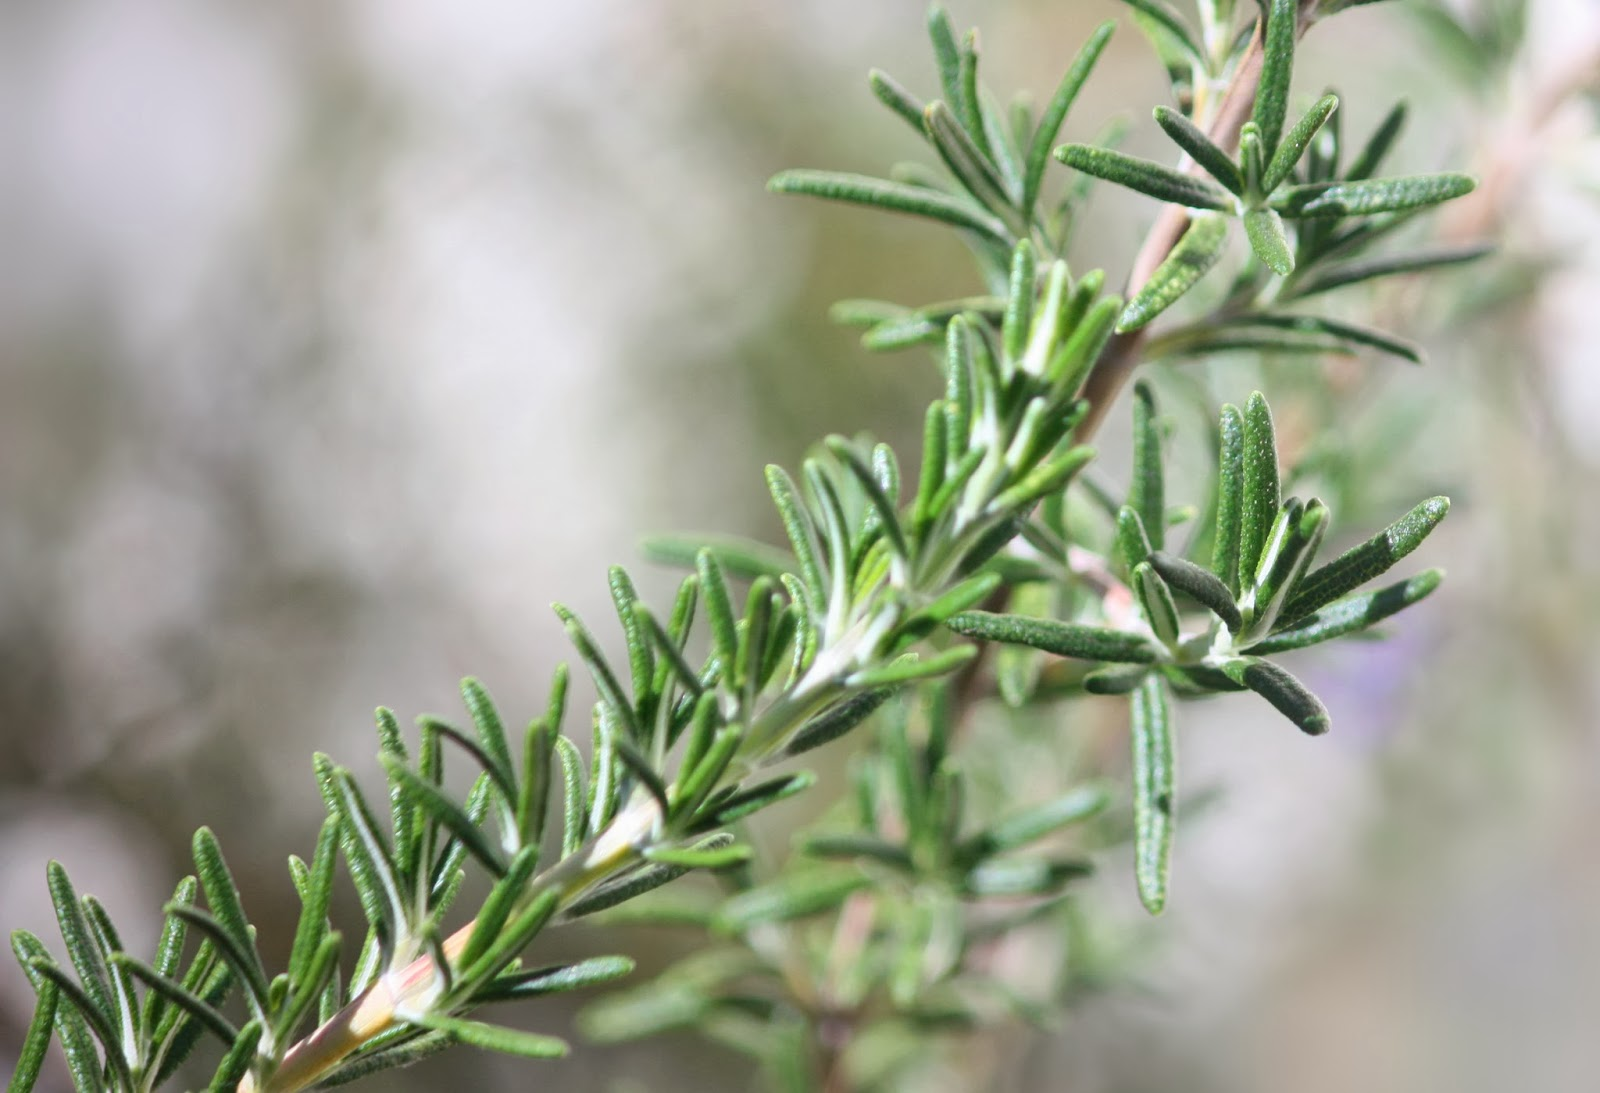 Rosemary is a healing herb